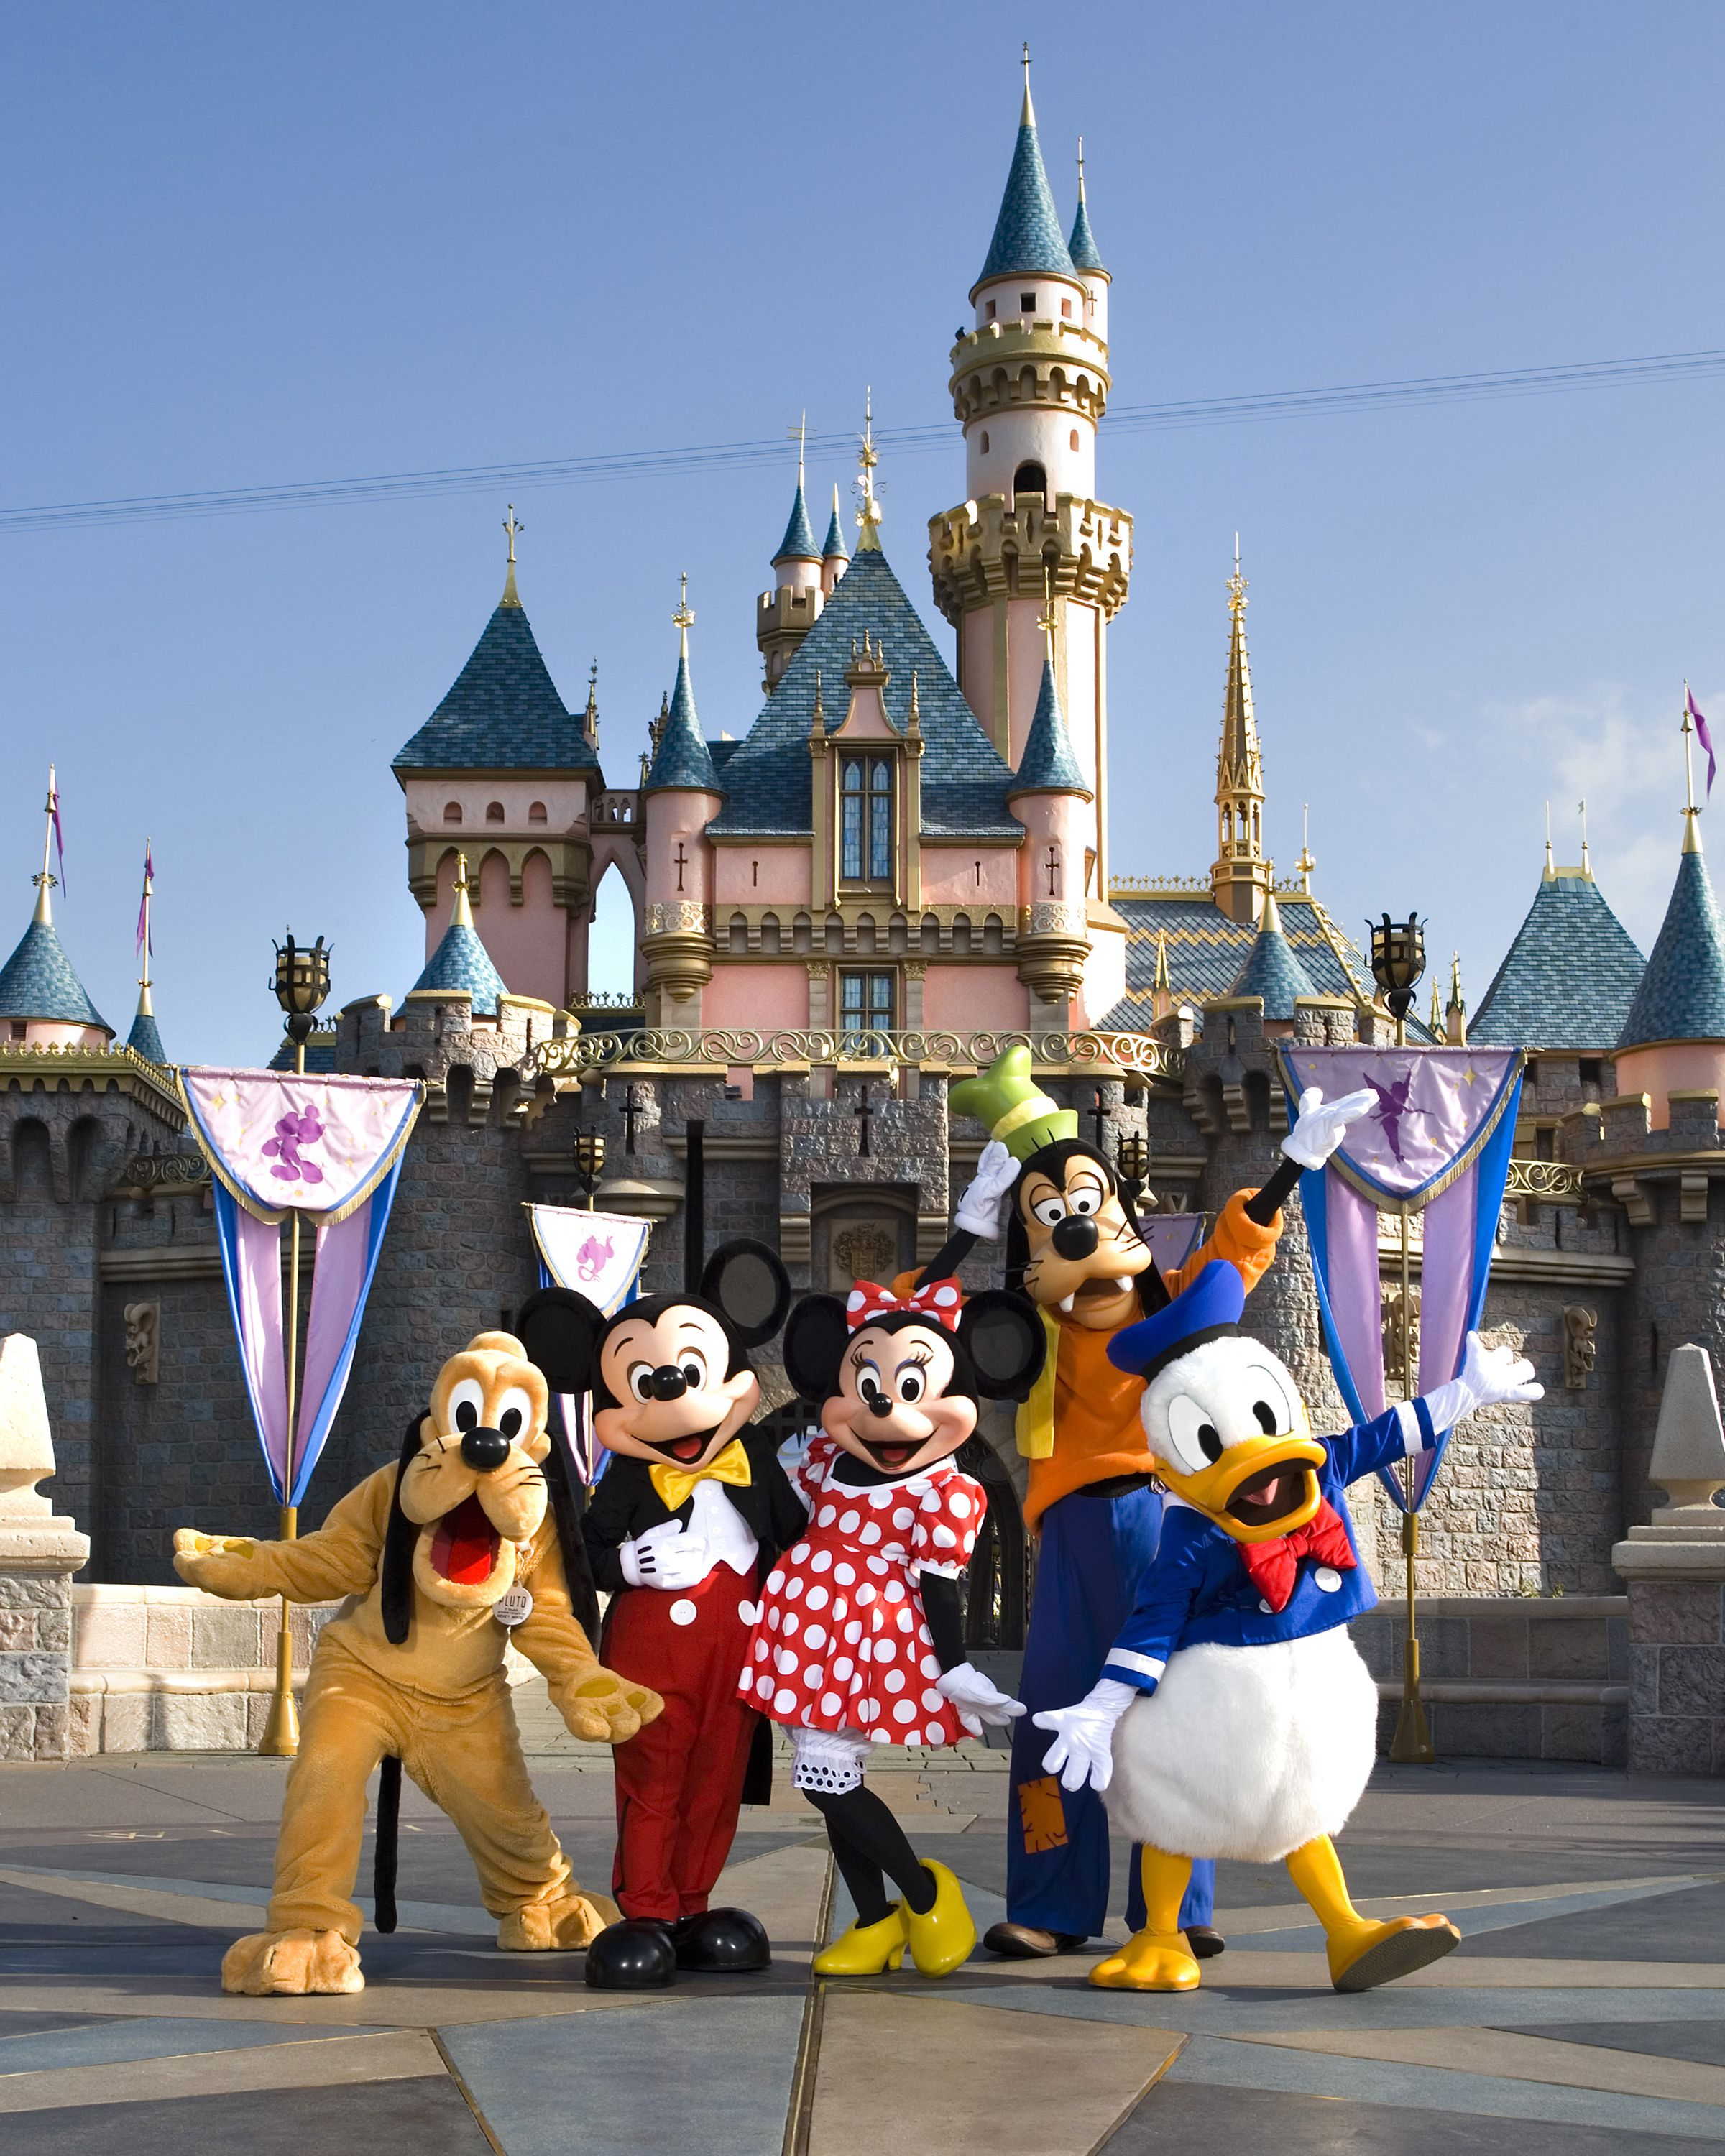 REPIN if you would rather be at a Disney Park with this bunch of characters.